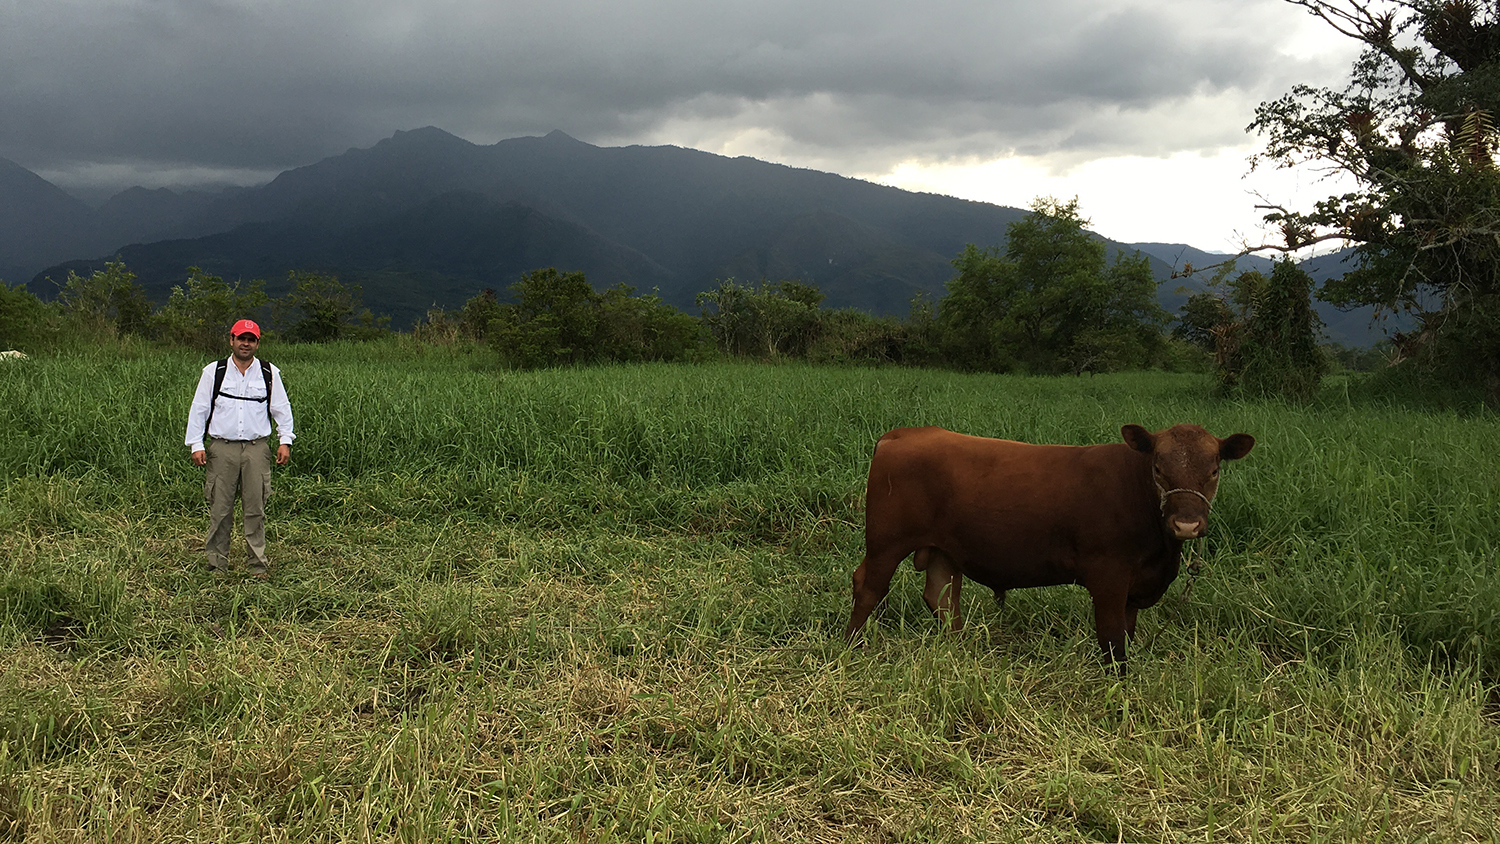 Cow and researcher in a pasture with grass and trees.